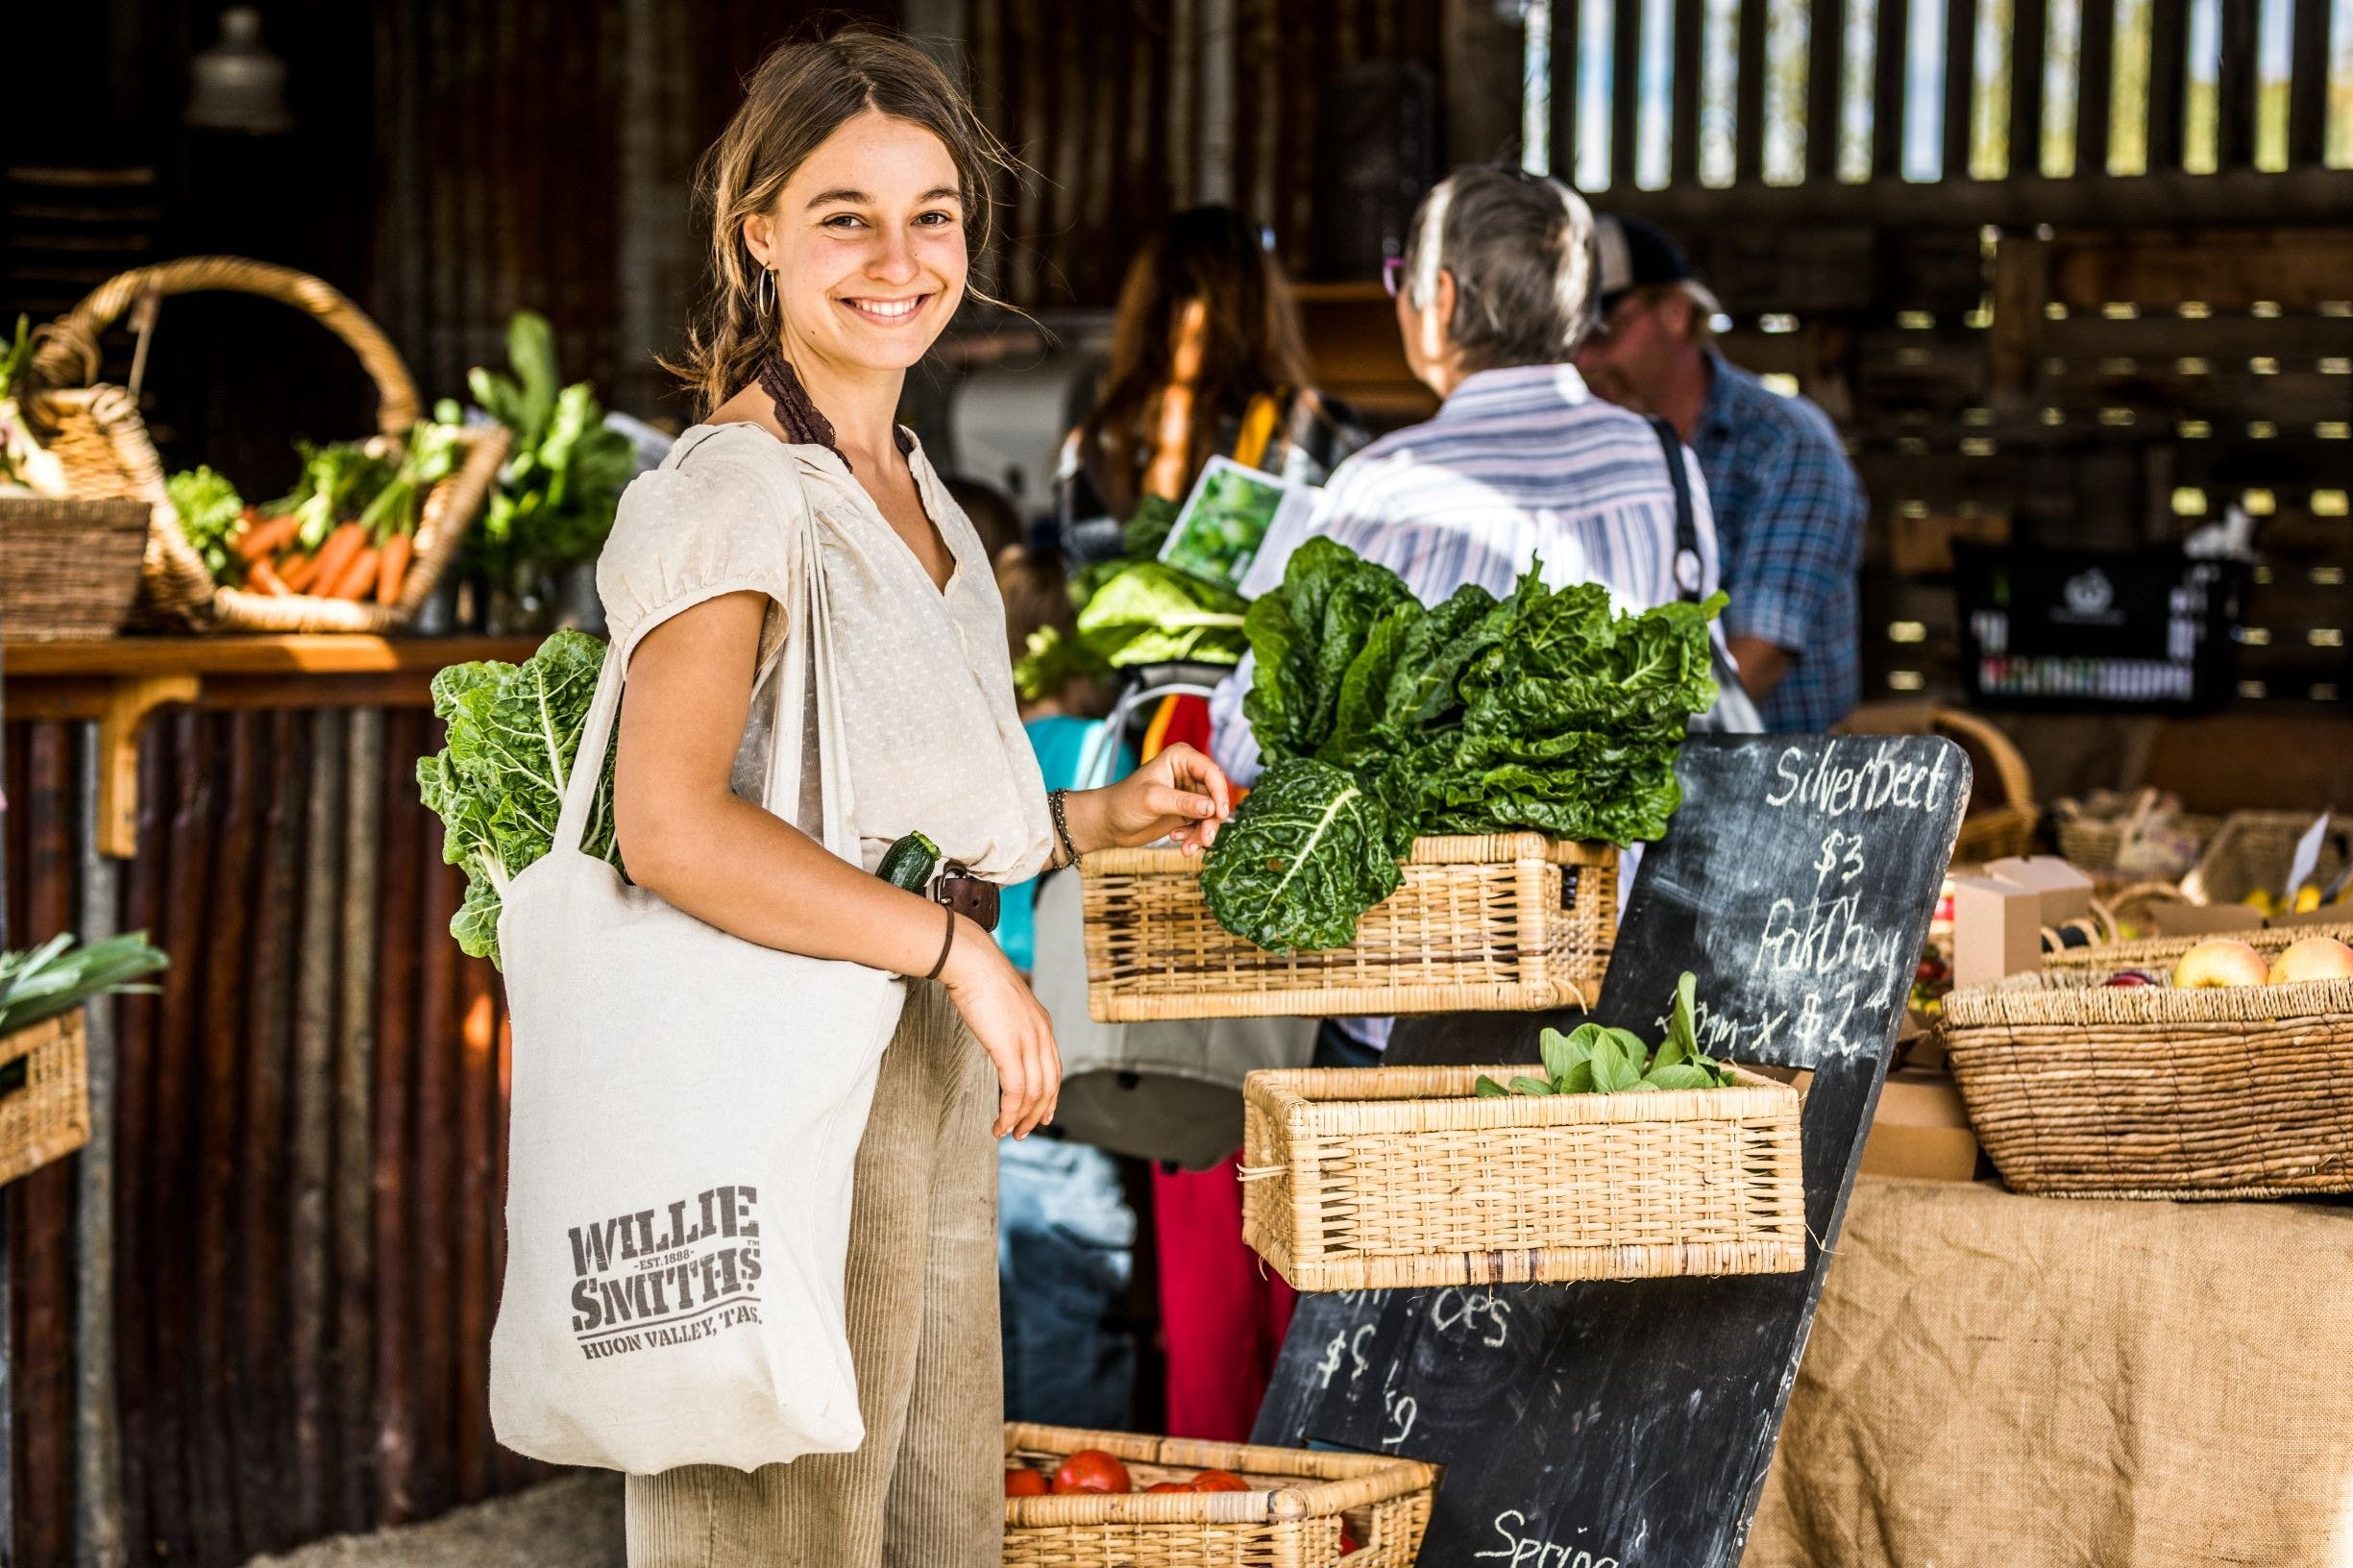 Willie Smith's Artisan and Produce Market - Surfers Gold Coast